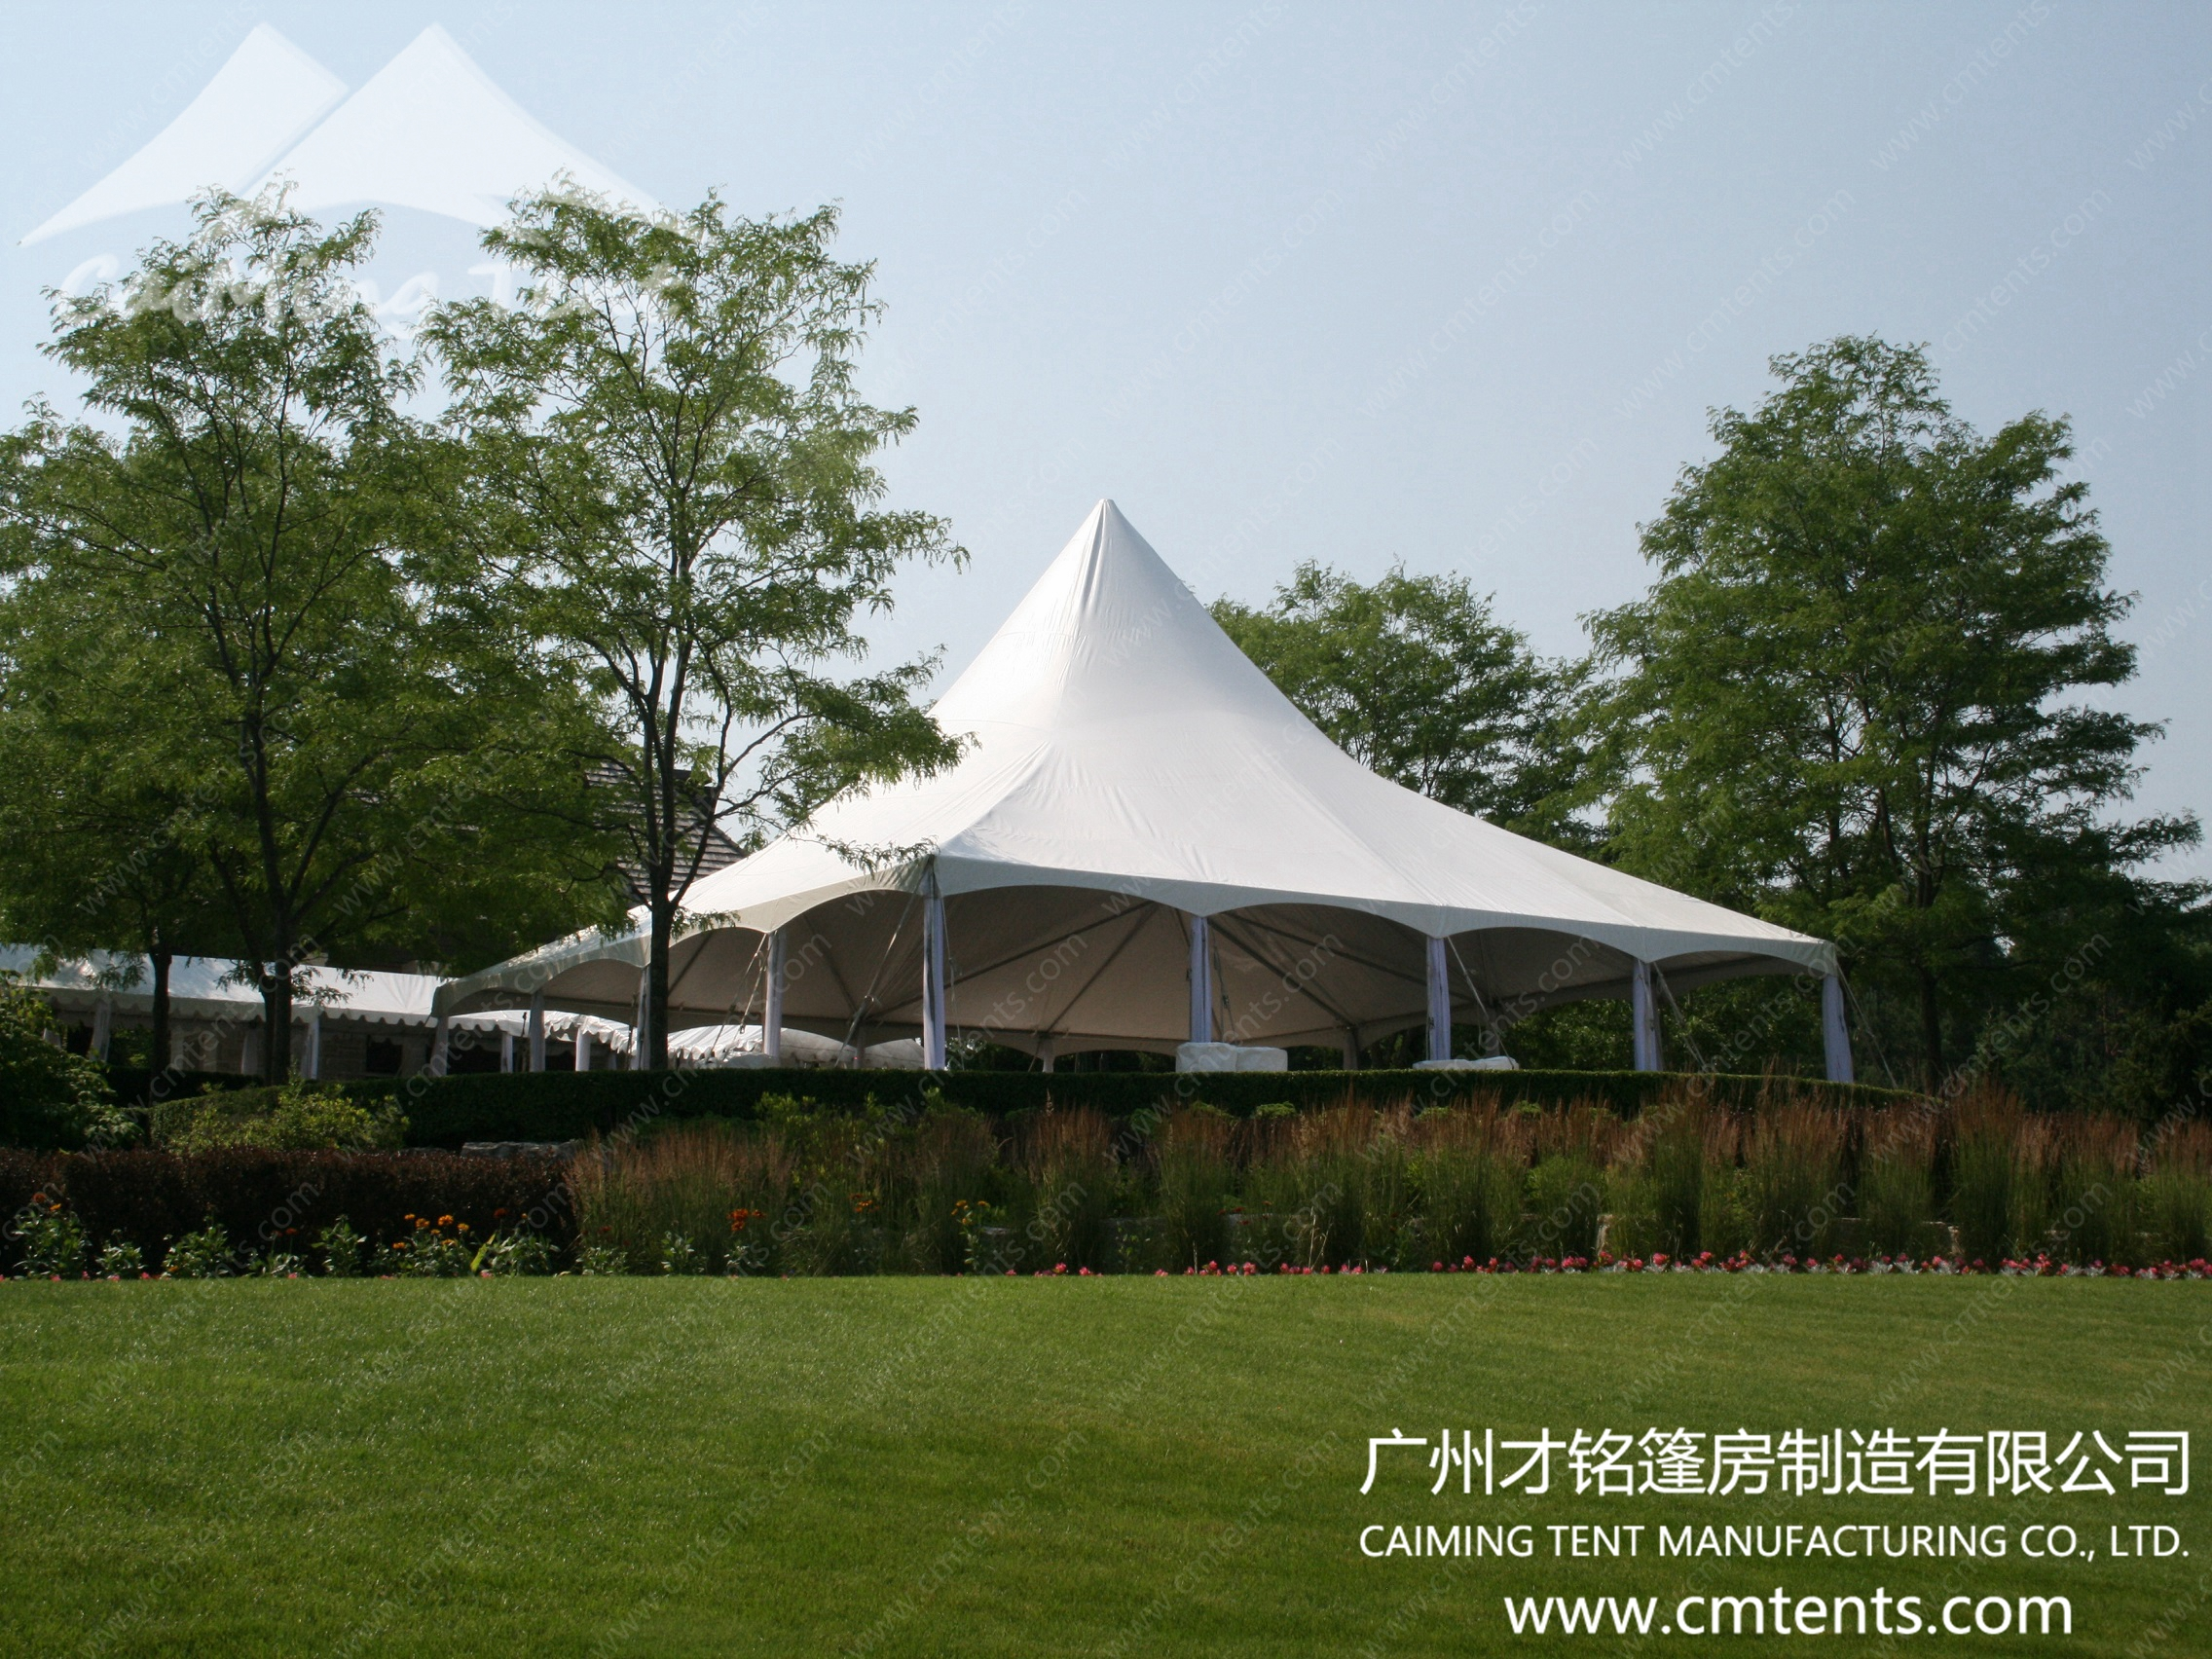 Pagoda Tent(PT 8M-10M),Pagoda Tent(PT 8M-10M),Pagoda Tents(PT 8M-10M) for sale,pagoda tent,pagoda tents,pagoda tents for sale,pagoda tents for sale,pagoda tent manufacturers,pagoda tent hire,pagoda tent for sale in india,pagoda tents for sale uk,pagoda tent images,pagoda tent hire delhi,pagoda tent india,pagoda tent sizes,pagoda tents for sale in south africa,pagoda tent,pagoda tent for sale,pagoda tent hire bangalore,pagoda tent south africa,amazon pagoda tent,buy a pagoda tent,what is a pagoda tent,how to make a pagoda tent,pagoda tent to buy,pagoda tent china,pagoda canopy tent,canvas pagoda tent,chinese pagoda tent,cheap pagoda tent,pagoda tent design,pagoda tent in delhi,pagoda tent manufacturers in delhi,dancover pagoda tent,pagoda tent ebay,pagoda event tent,pagoda tent for sale uk,pagoda tent from turkey,pagoda tent hire uk,pagodetent huren,pagoda tent instructions,pagoda tent in pune,pagoda tent manufacturers in india,pagodetent kopen,pagoda tent lining,pagoda tent 3d model,pagoda tent price,pagoda party tent,pagoda pyramid tent,pvc pagoda party tent,20 x 40 pagoda party tent,2040 pvc pagoda party tent,pvc pagoda tent,pagoda tent suppliers,pagoda style tent,pagoda tent youtube,tensile pagoda tent,transparent pagoda tent,pagoda tent uk,pagoda pop up tent,used pagoda tent,20 x 40 pagoda tent,pagoda tents installation youtube,10x10 pagoda tent,kelty pagoda 4 tent